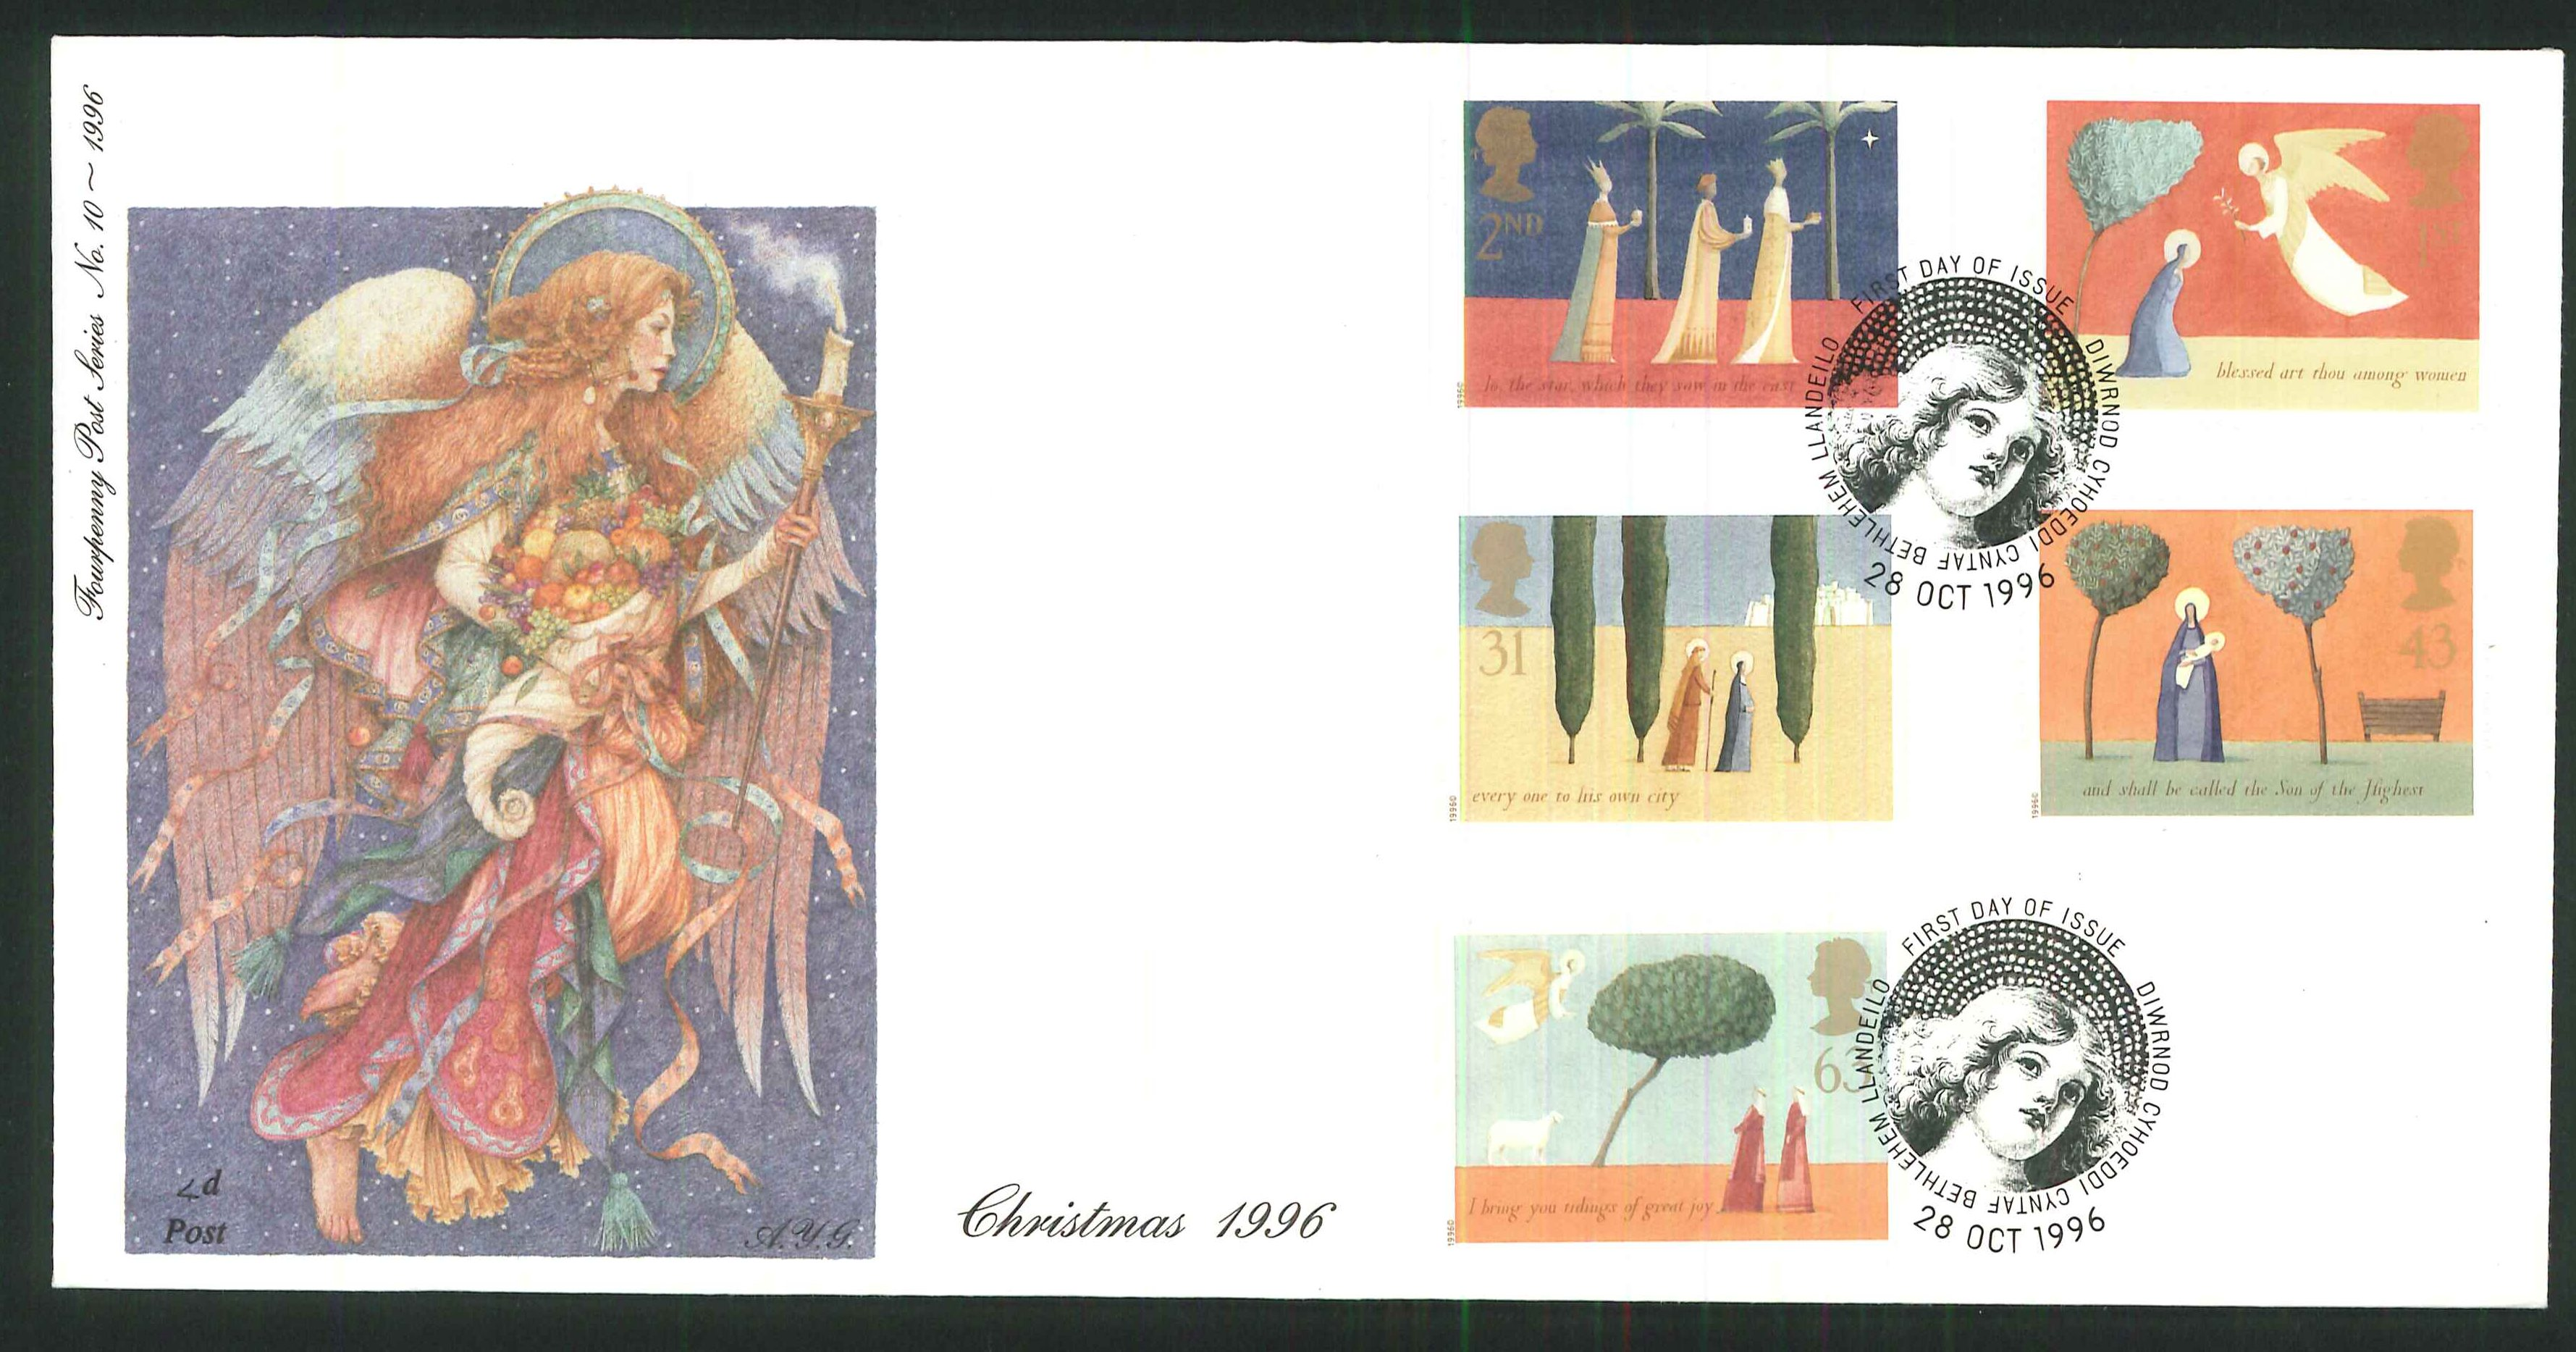 1996 - Christmas, First Day Cover - Llandeilo Postmark